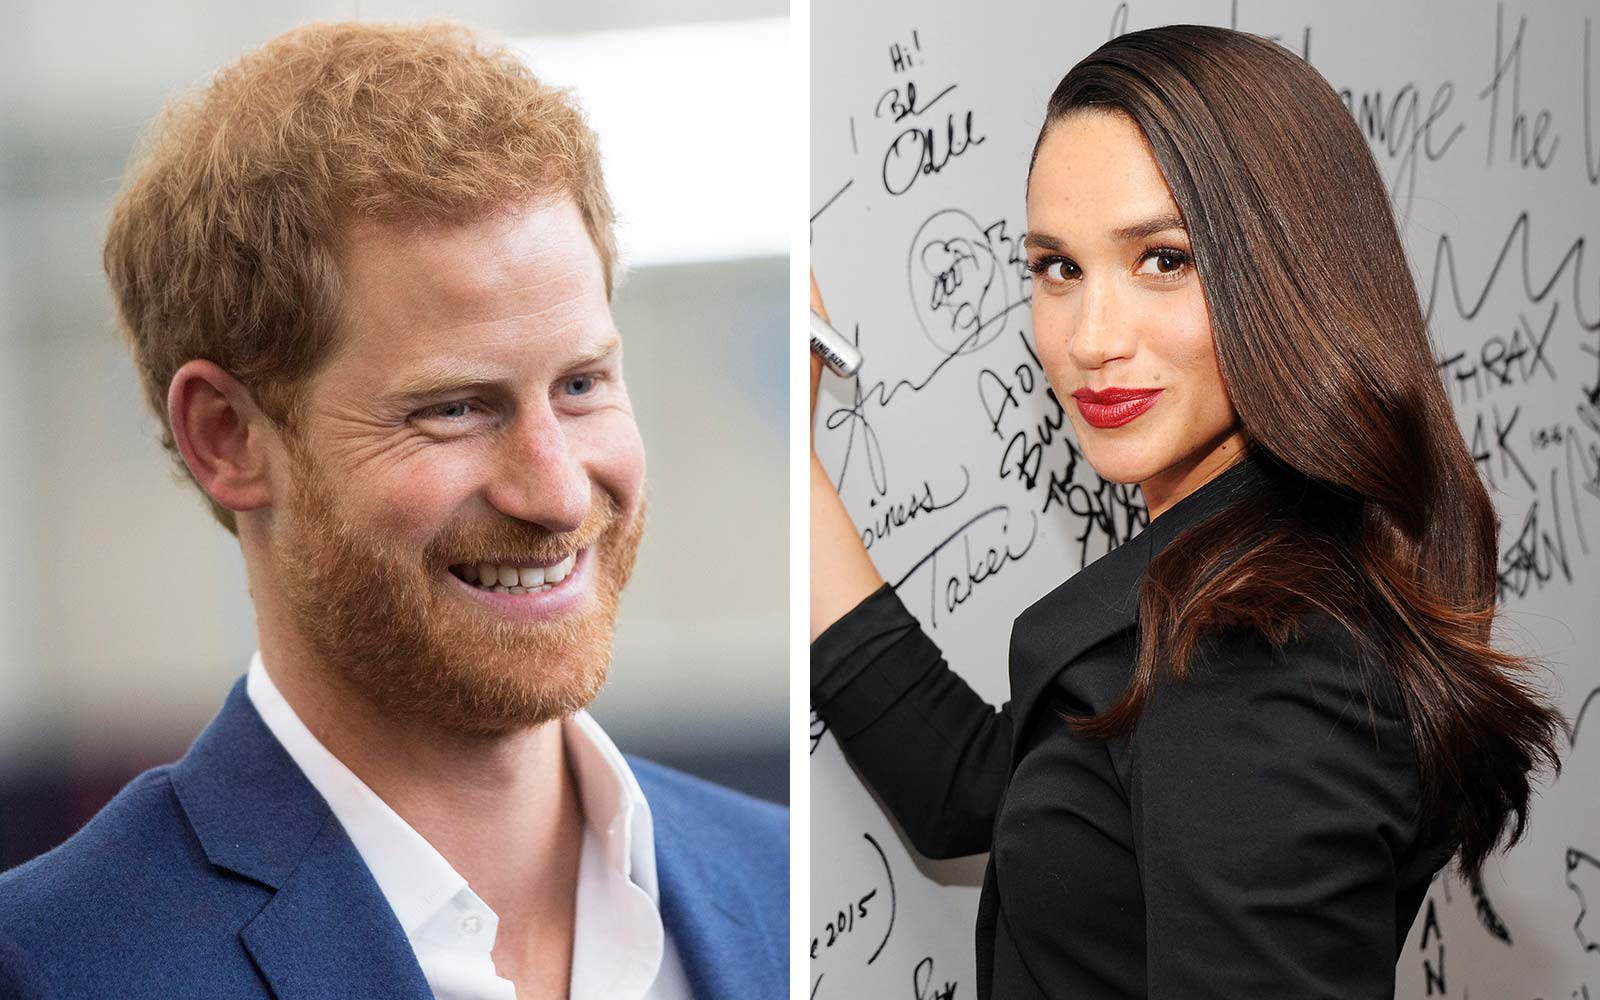 WATCH: Prince Harry and Meghan Markle make first public